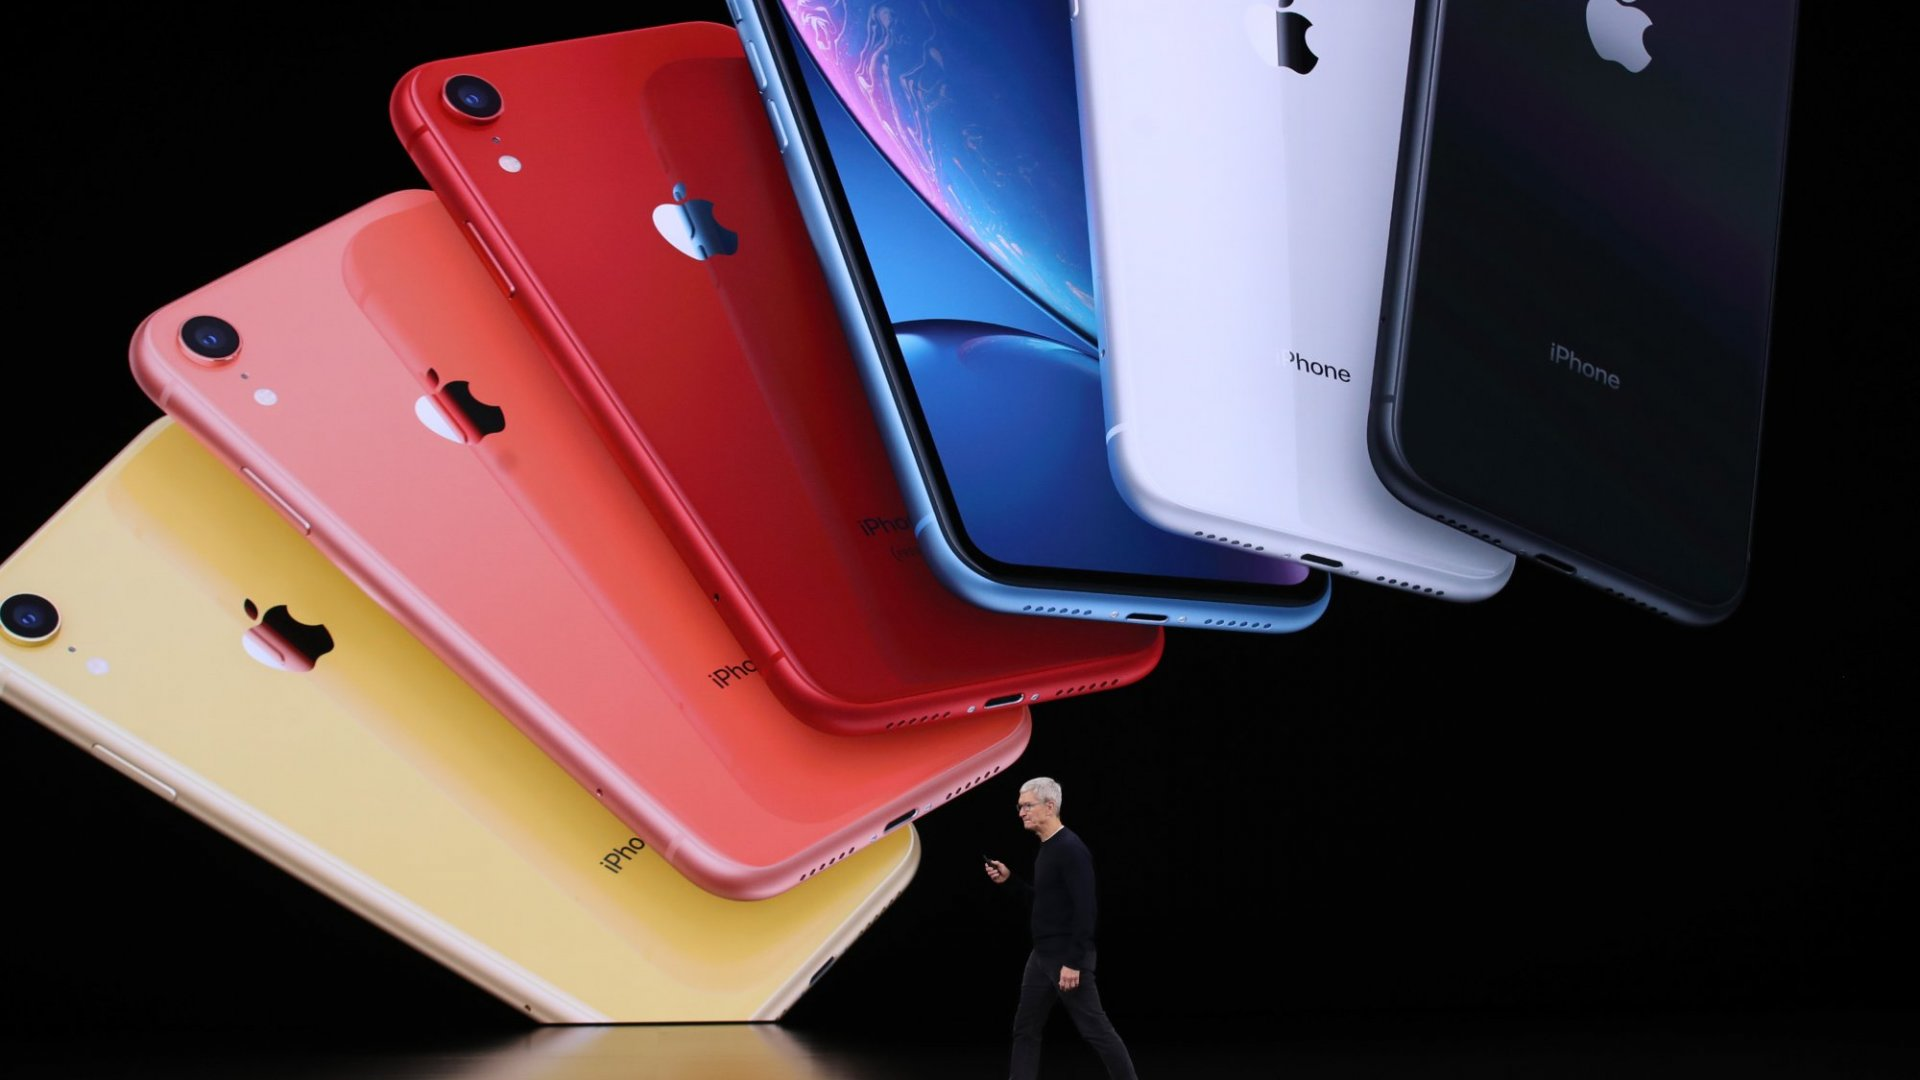 Why Apple's Next iPhone Could Be Delayed Up to 2 Months